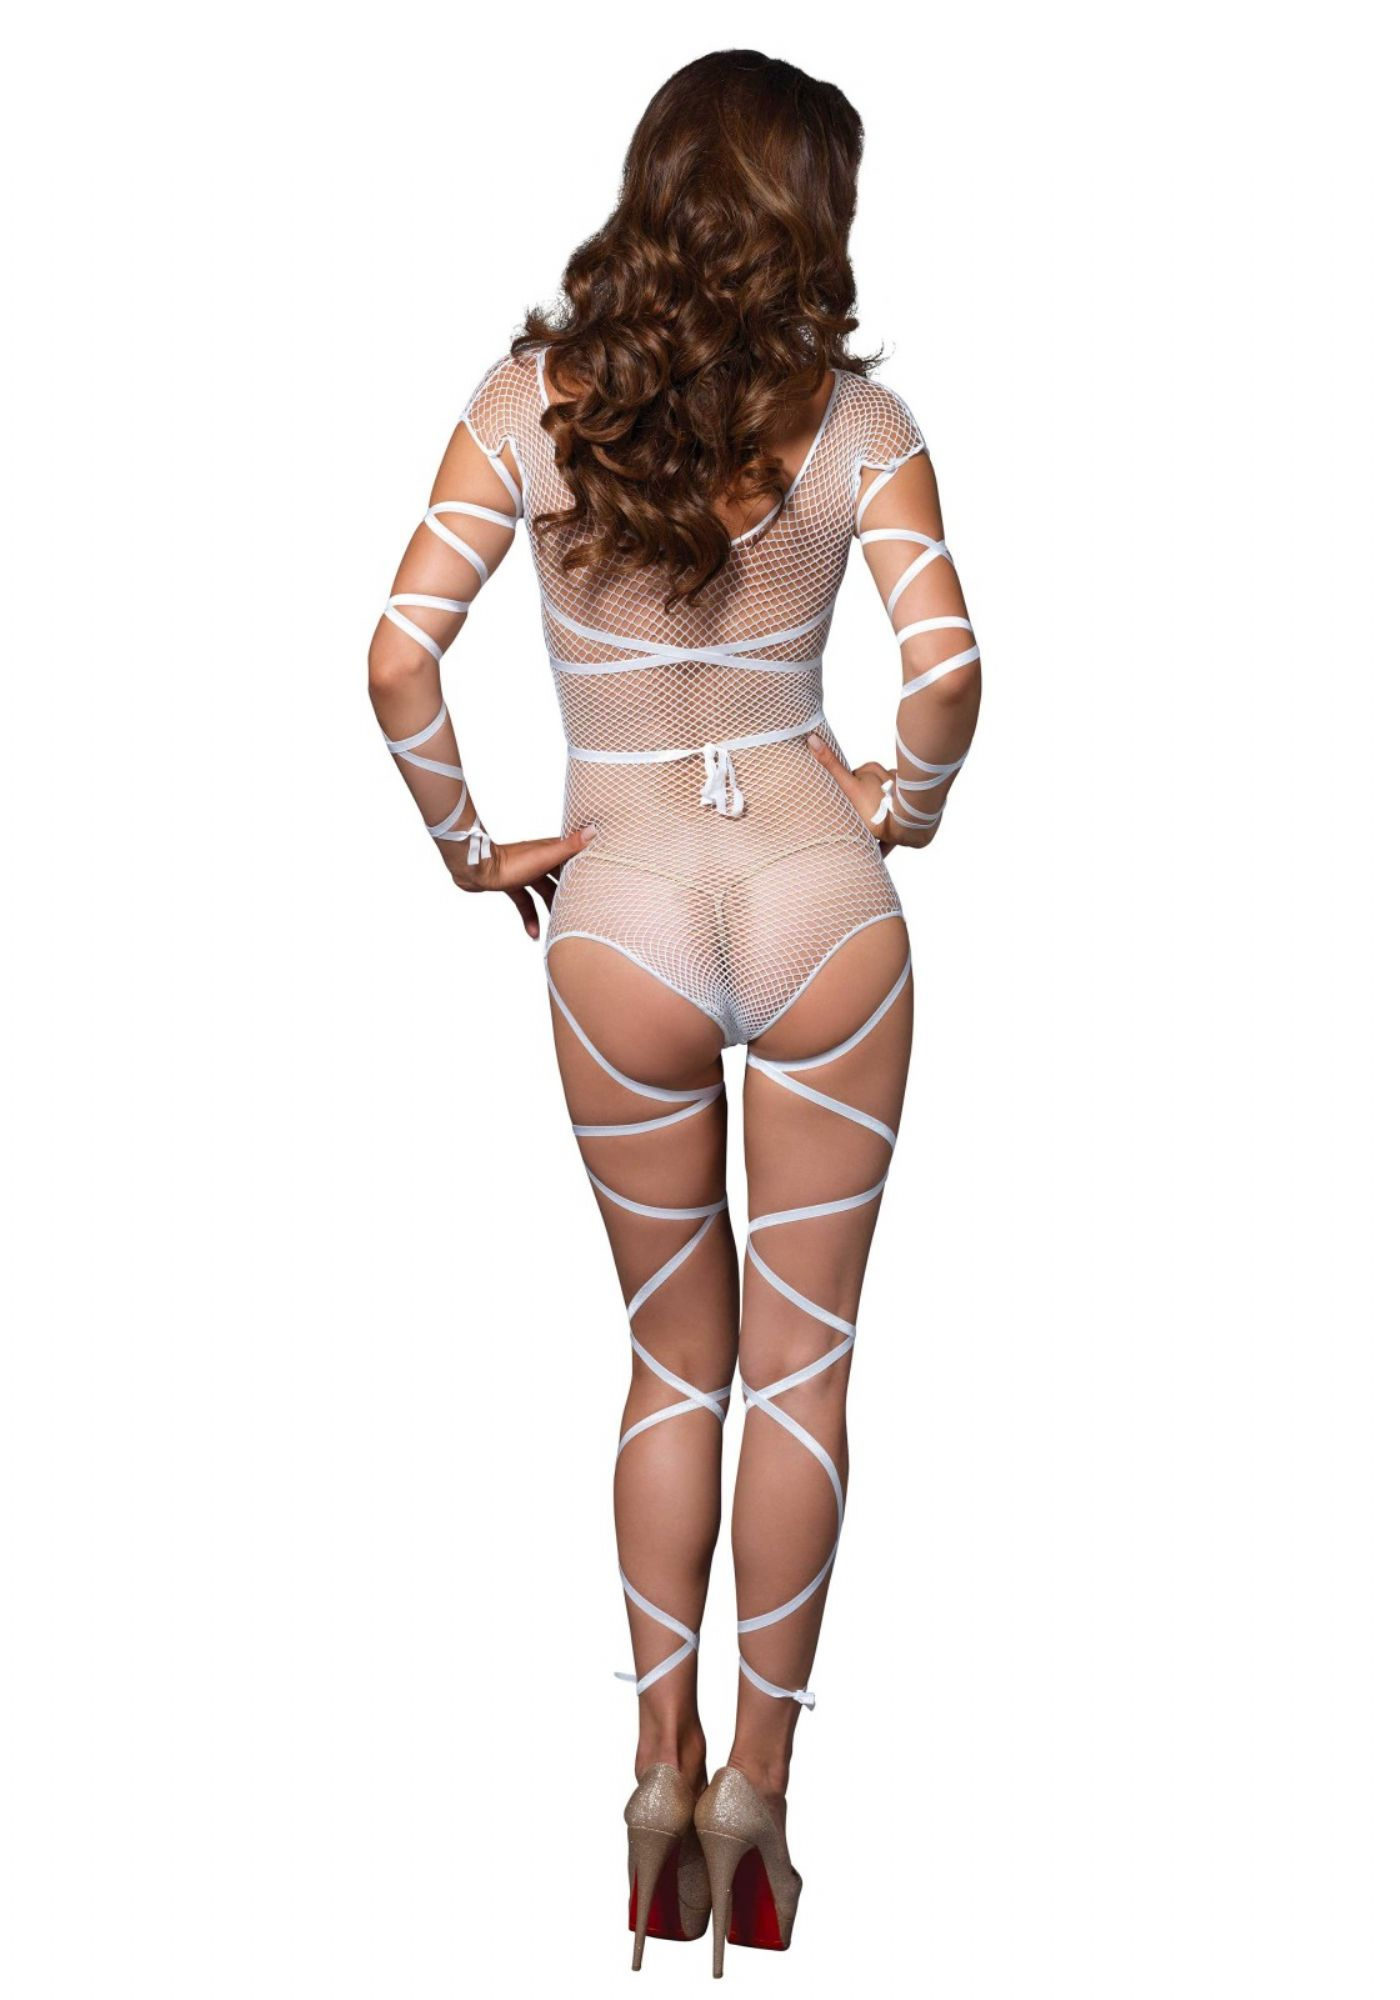 Fishnet Teddy - med wraps (LA89174)